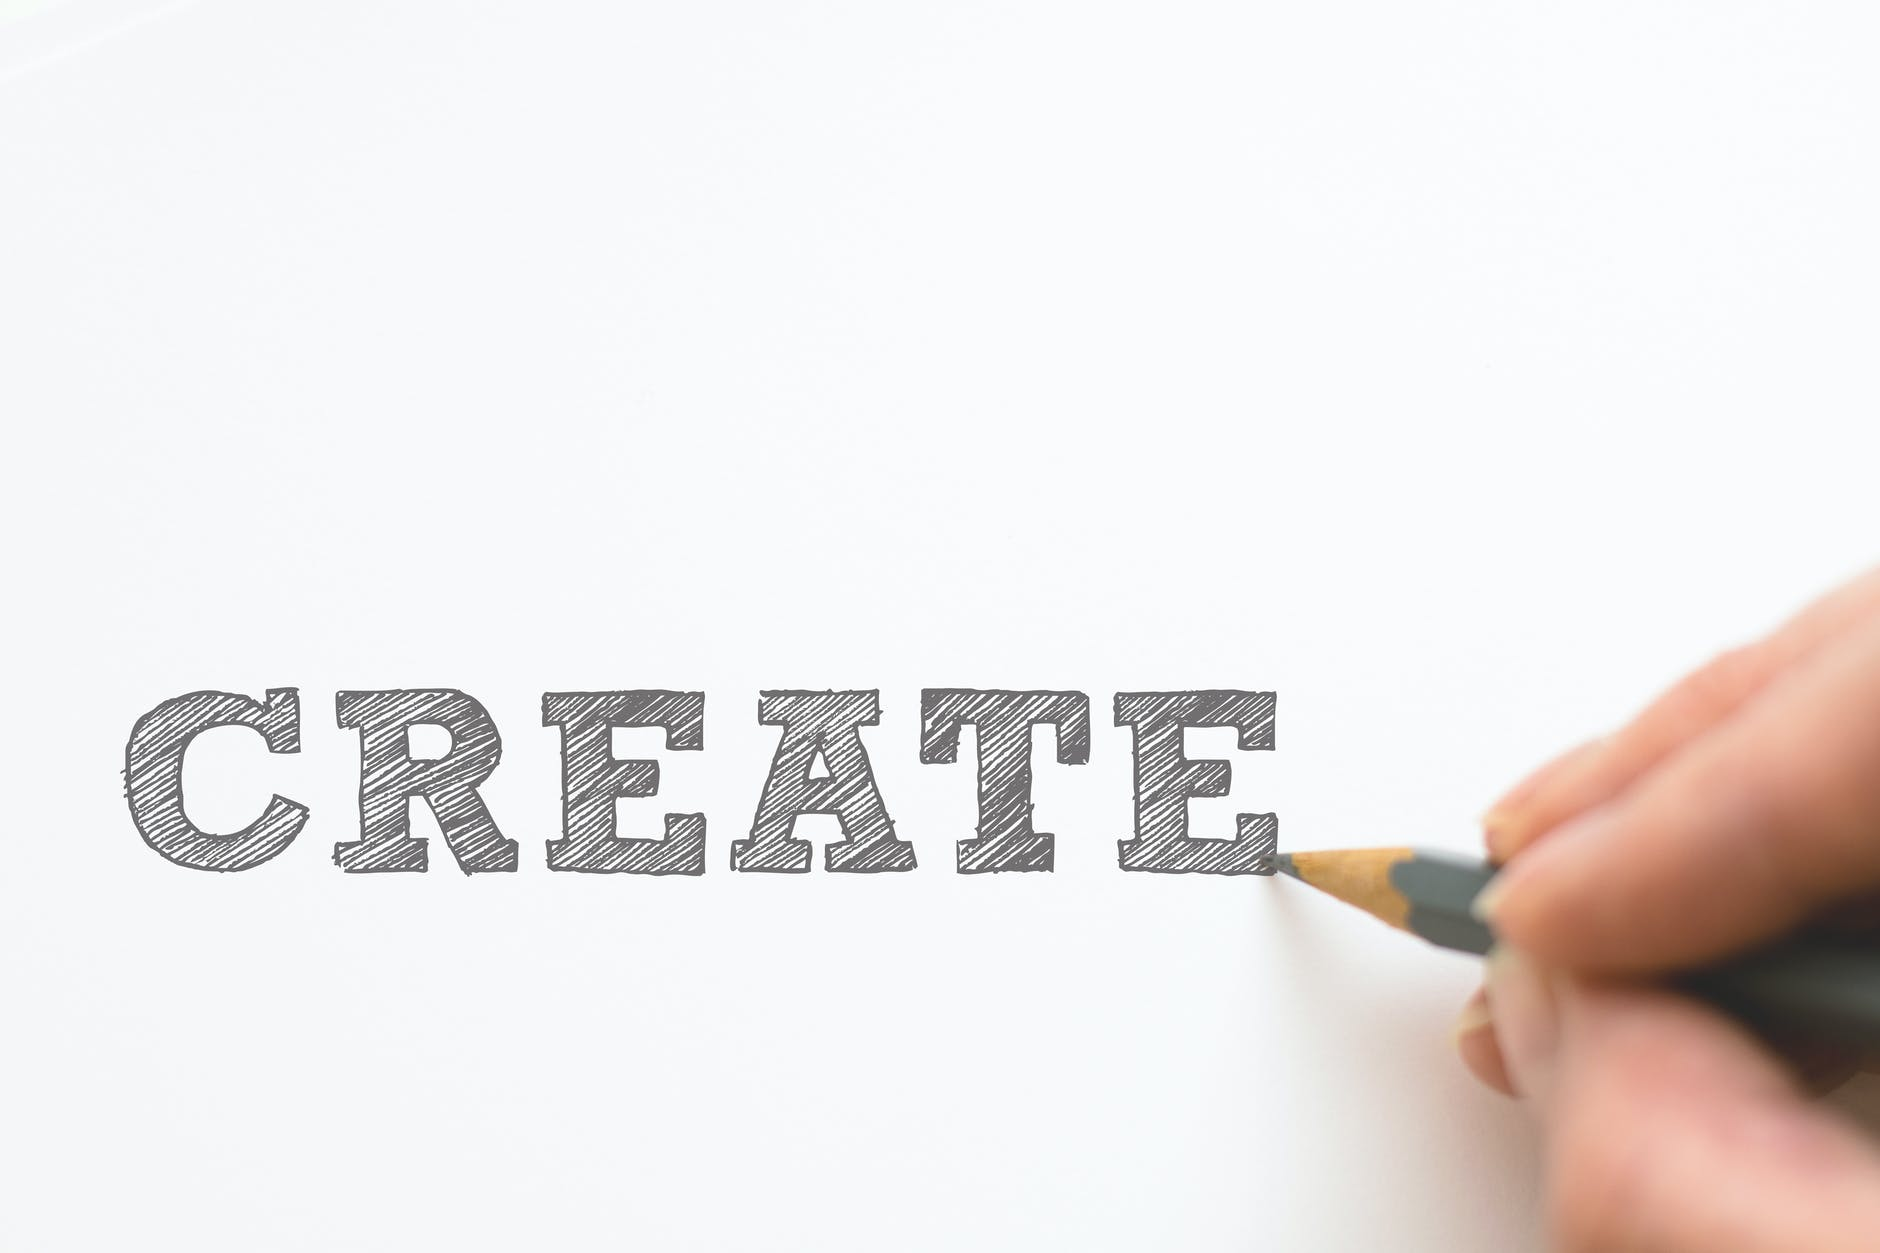 Glean from these great ideas to get your innovative ideas rolling again!